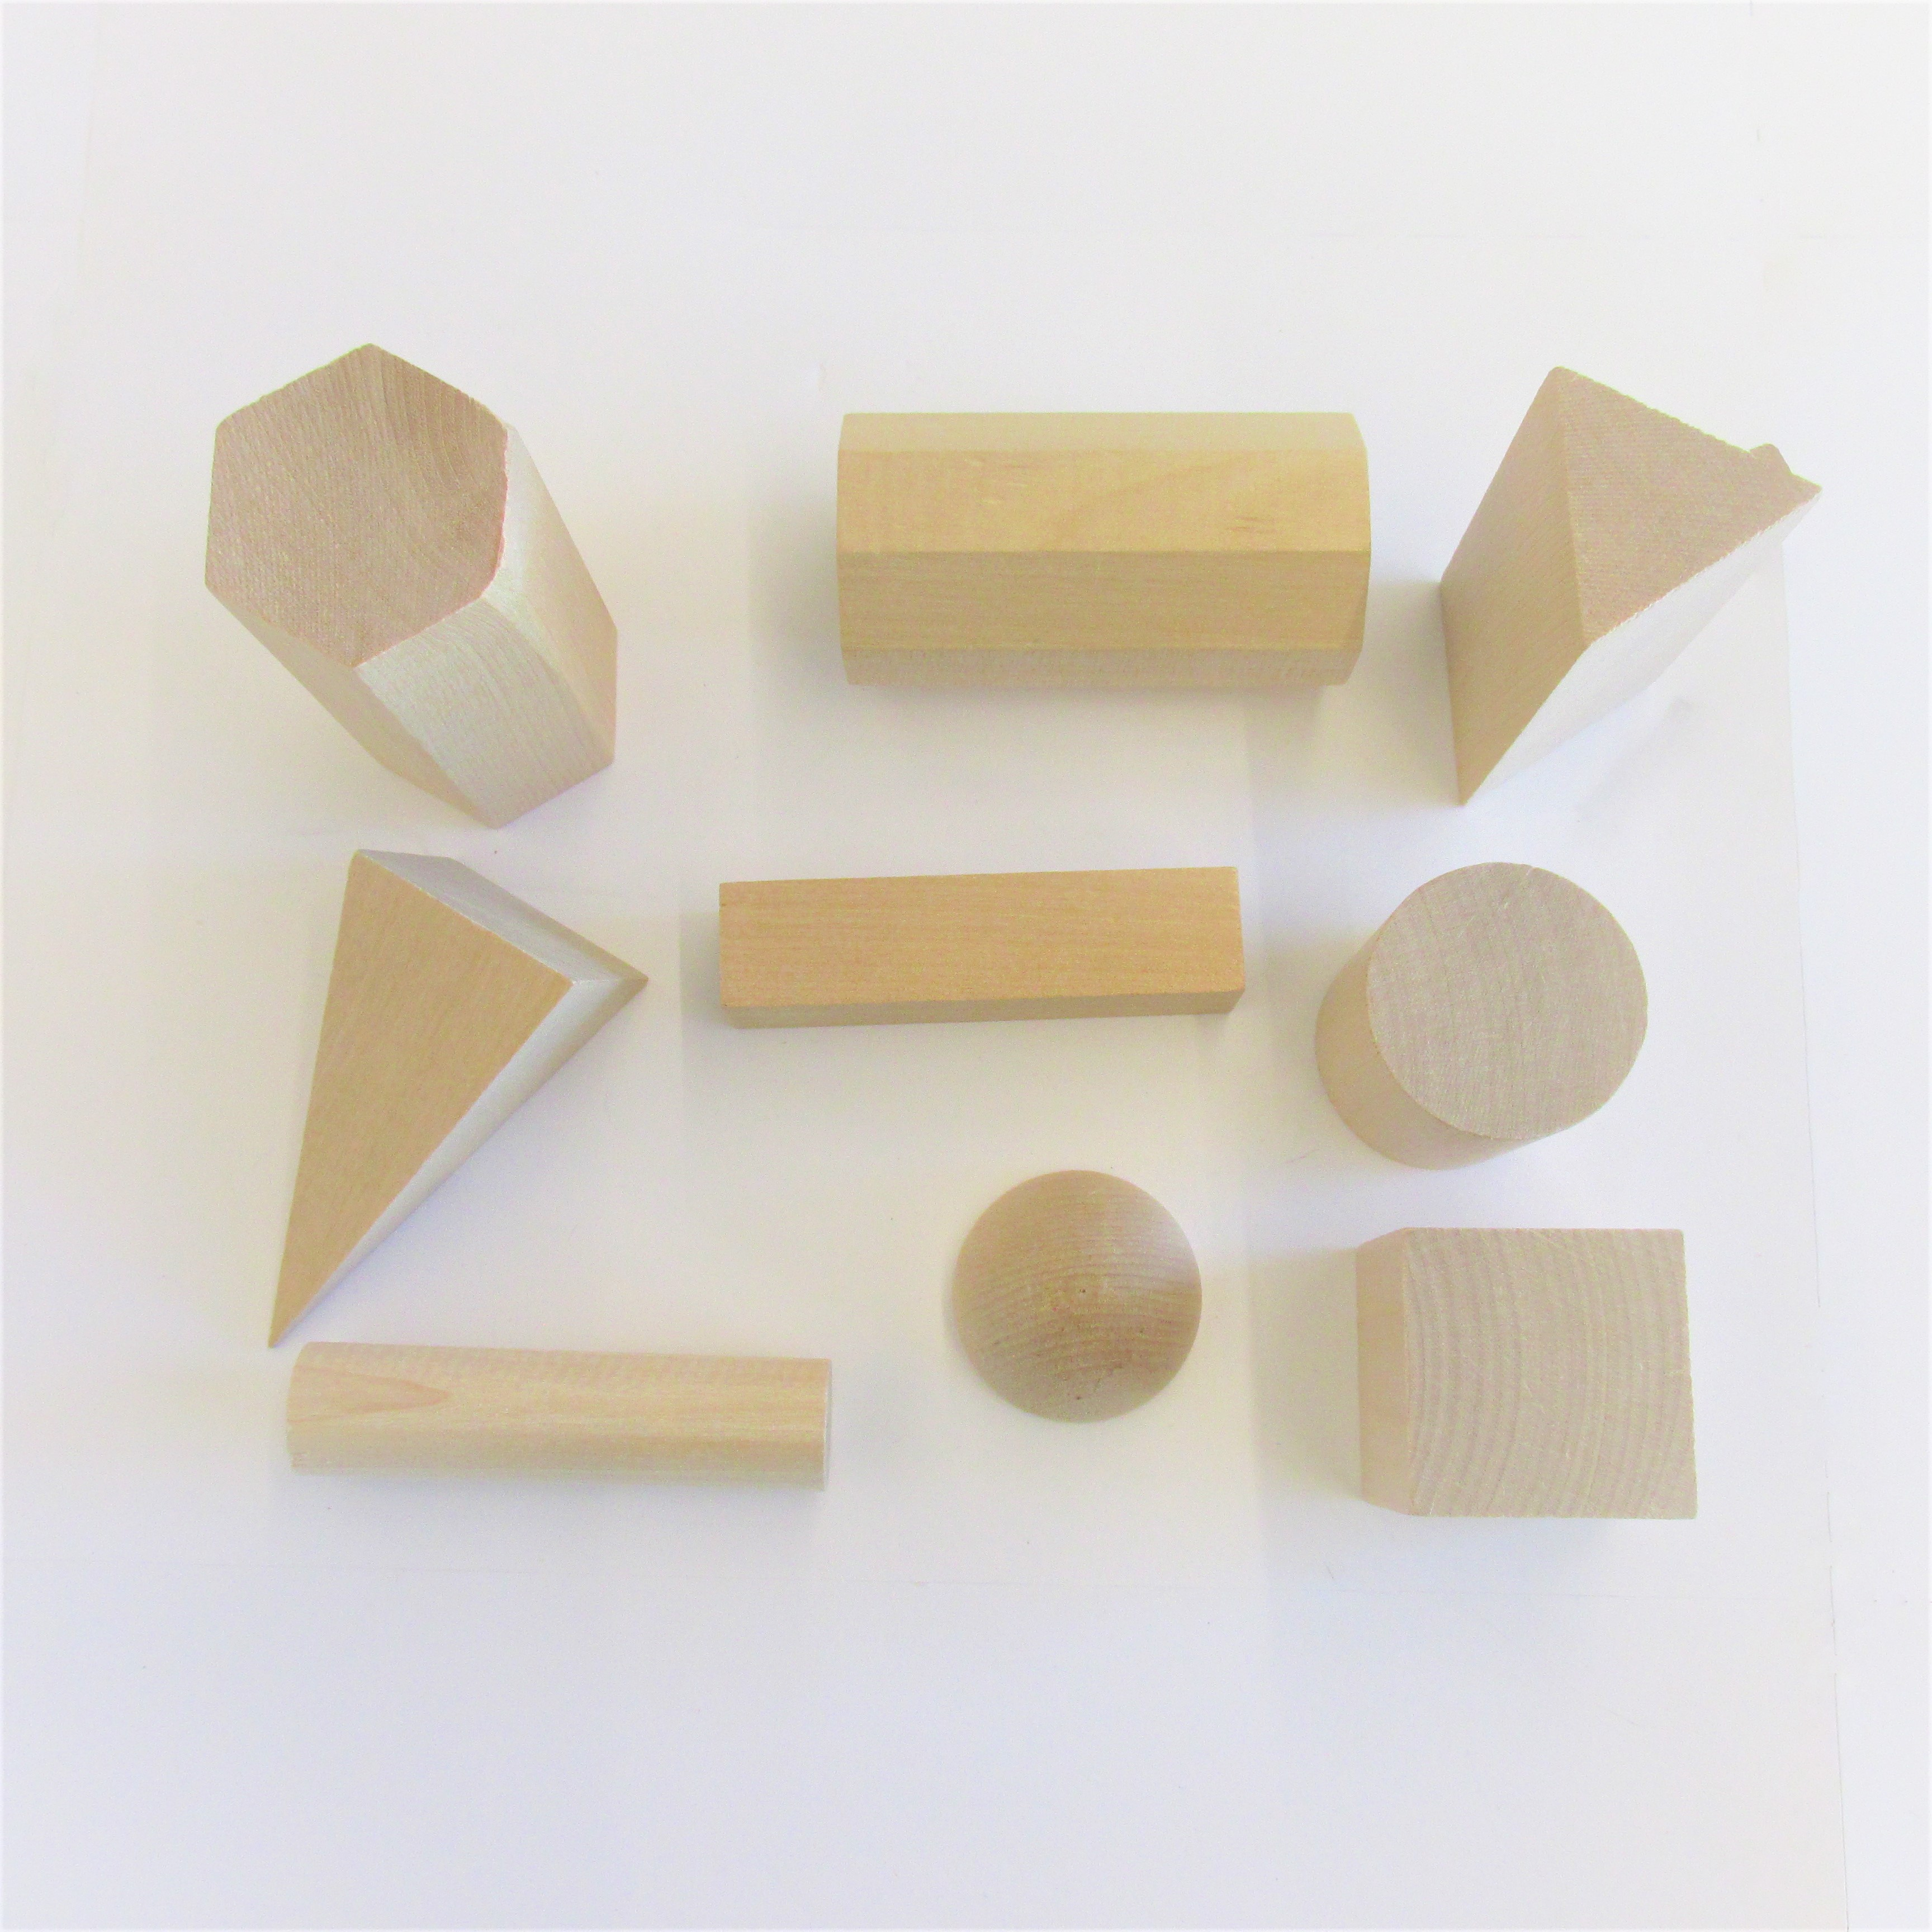 wood geometric solid shapes